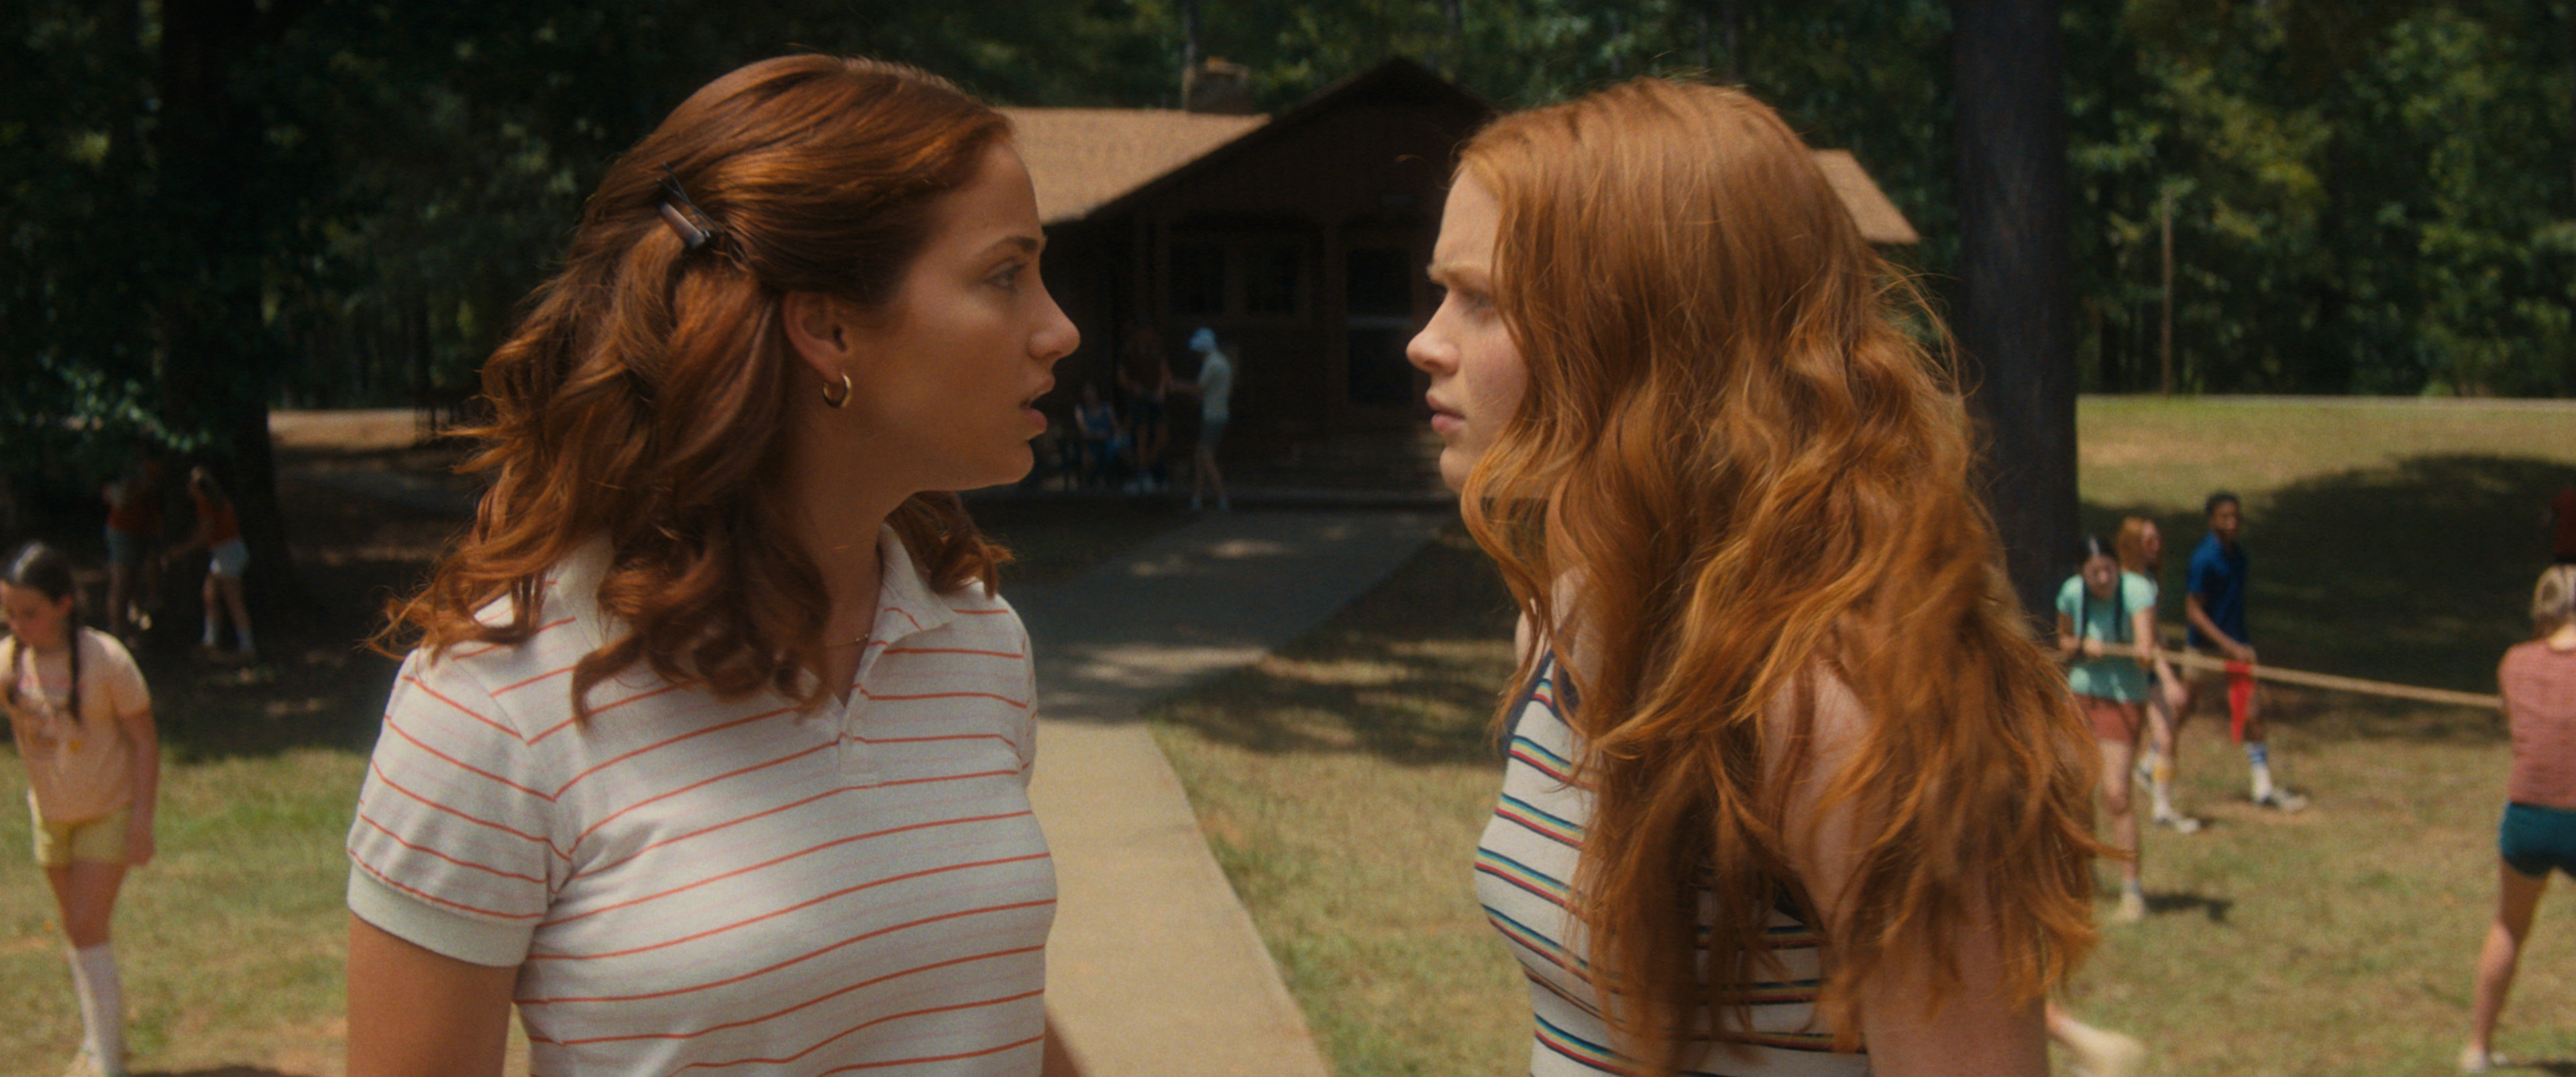 Emily Rudd and Sadie Sink stand facing each other mid-argument in the movie in FEAR STREET: PART TWO - 1978